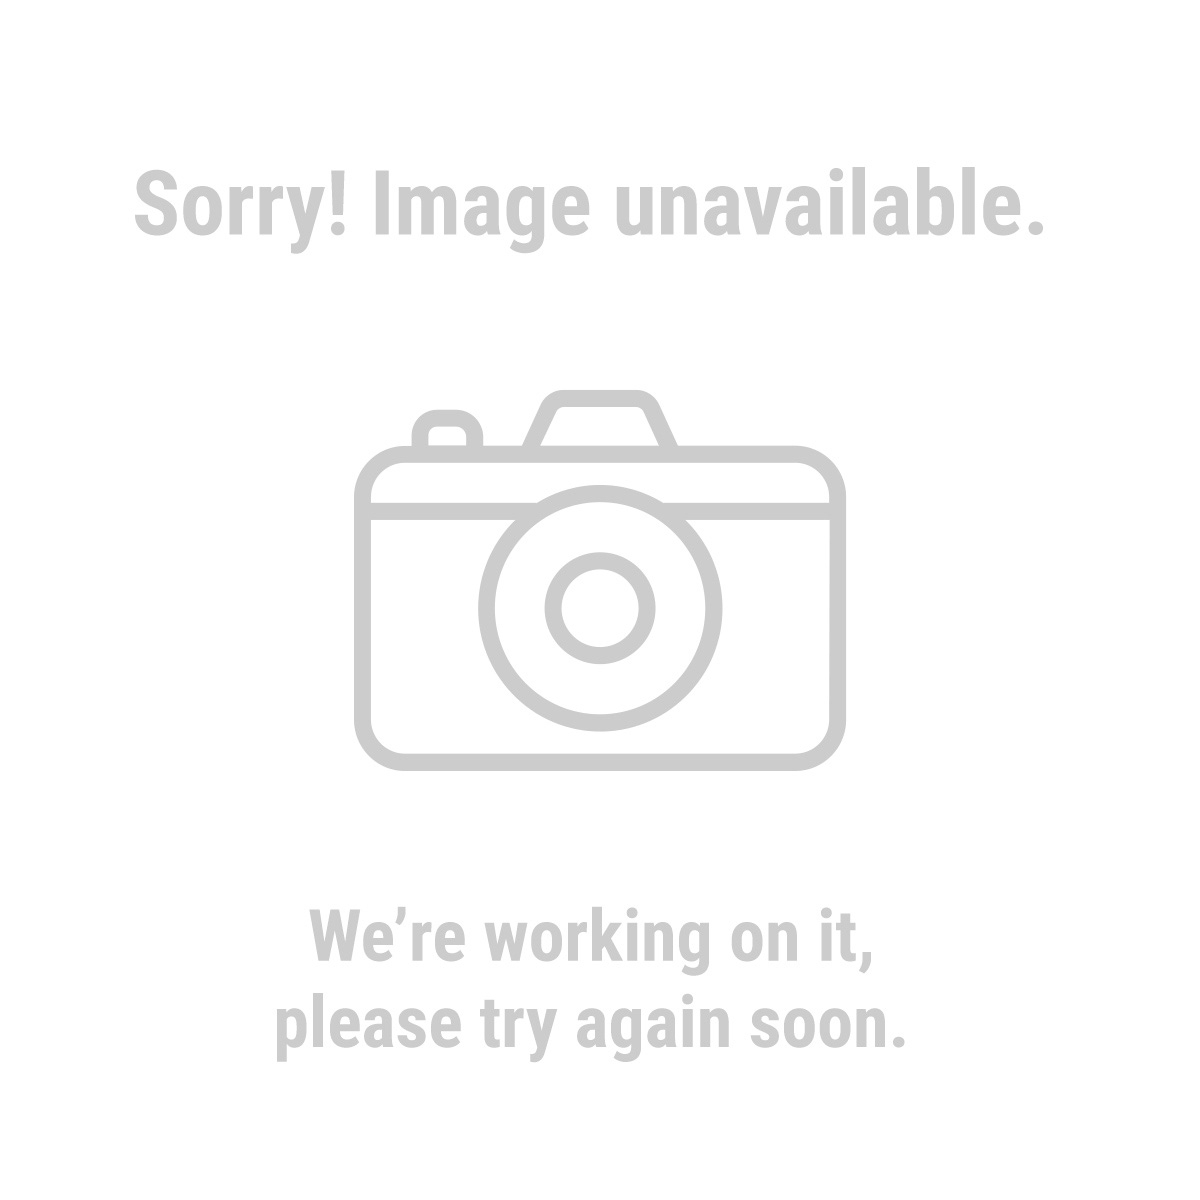 Central-Machinery 43533 Bench Grinder with Flex Shaft